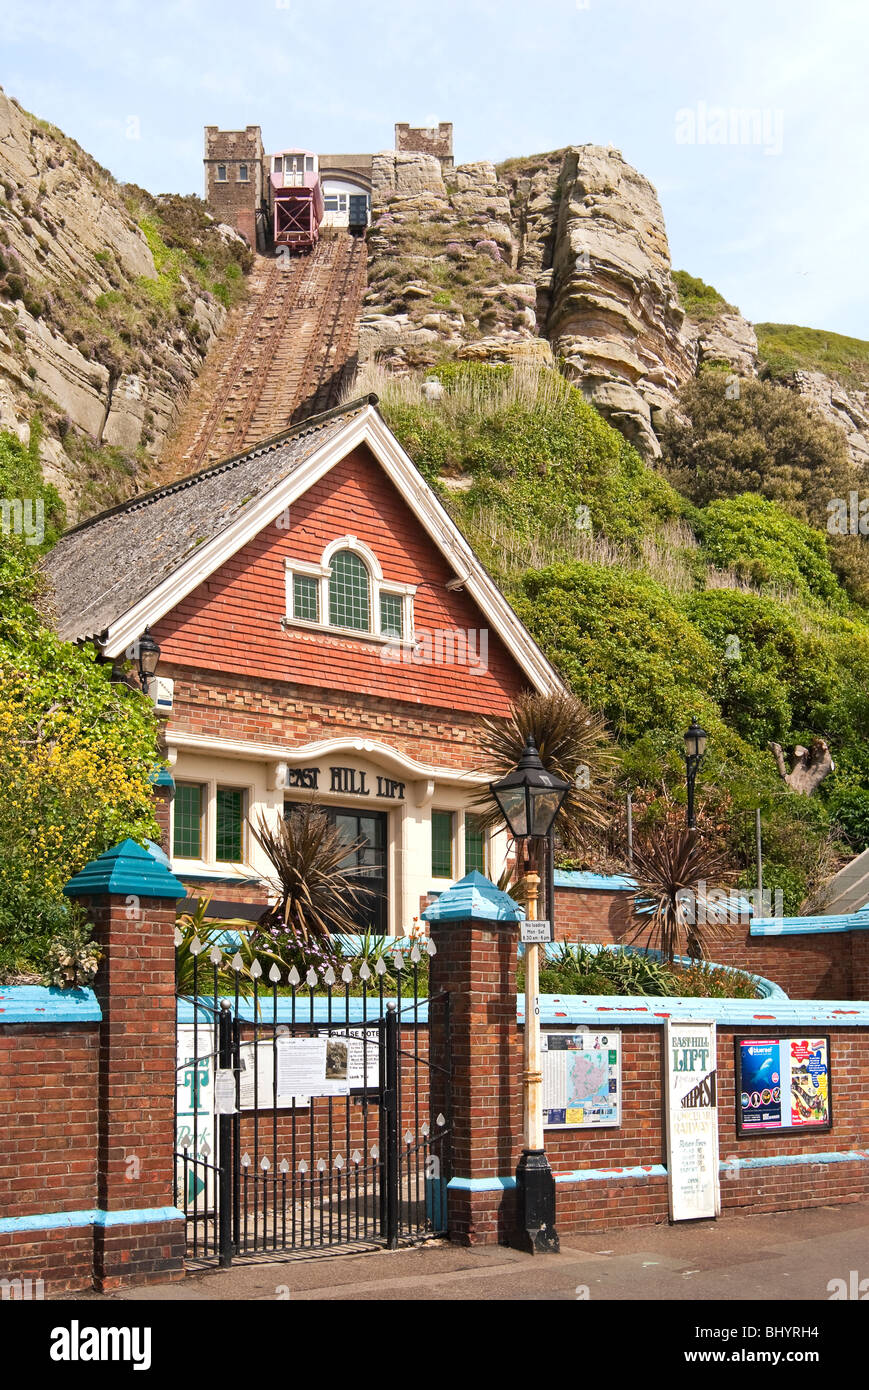 The historical East Hill Lift in Hastings, South East England . - Stock Image